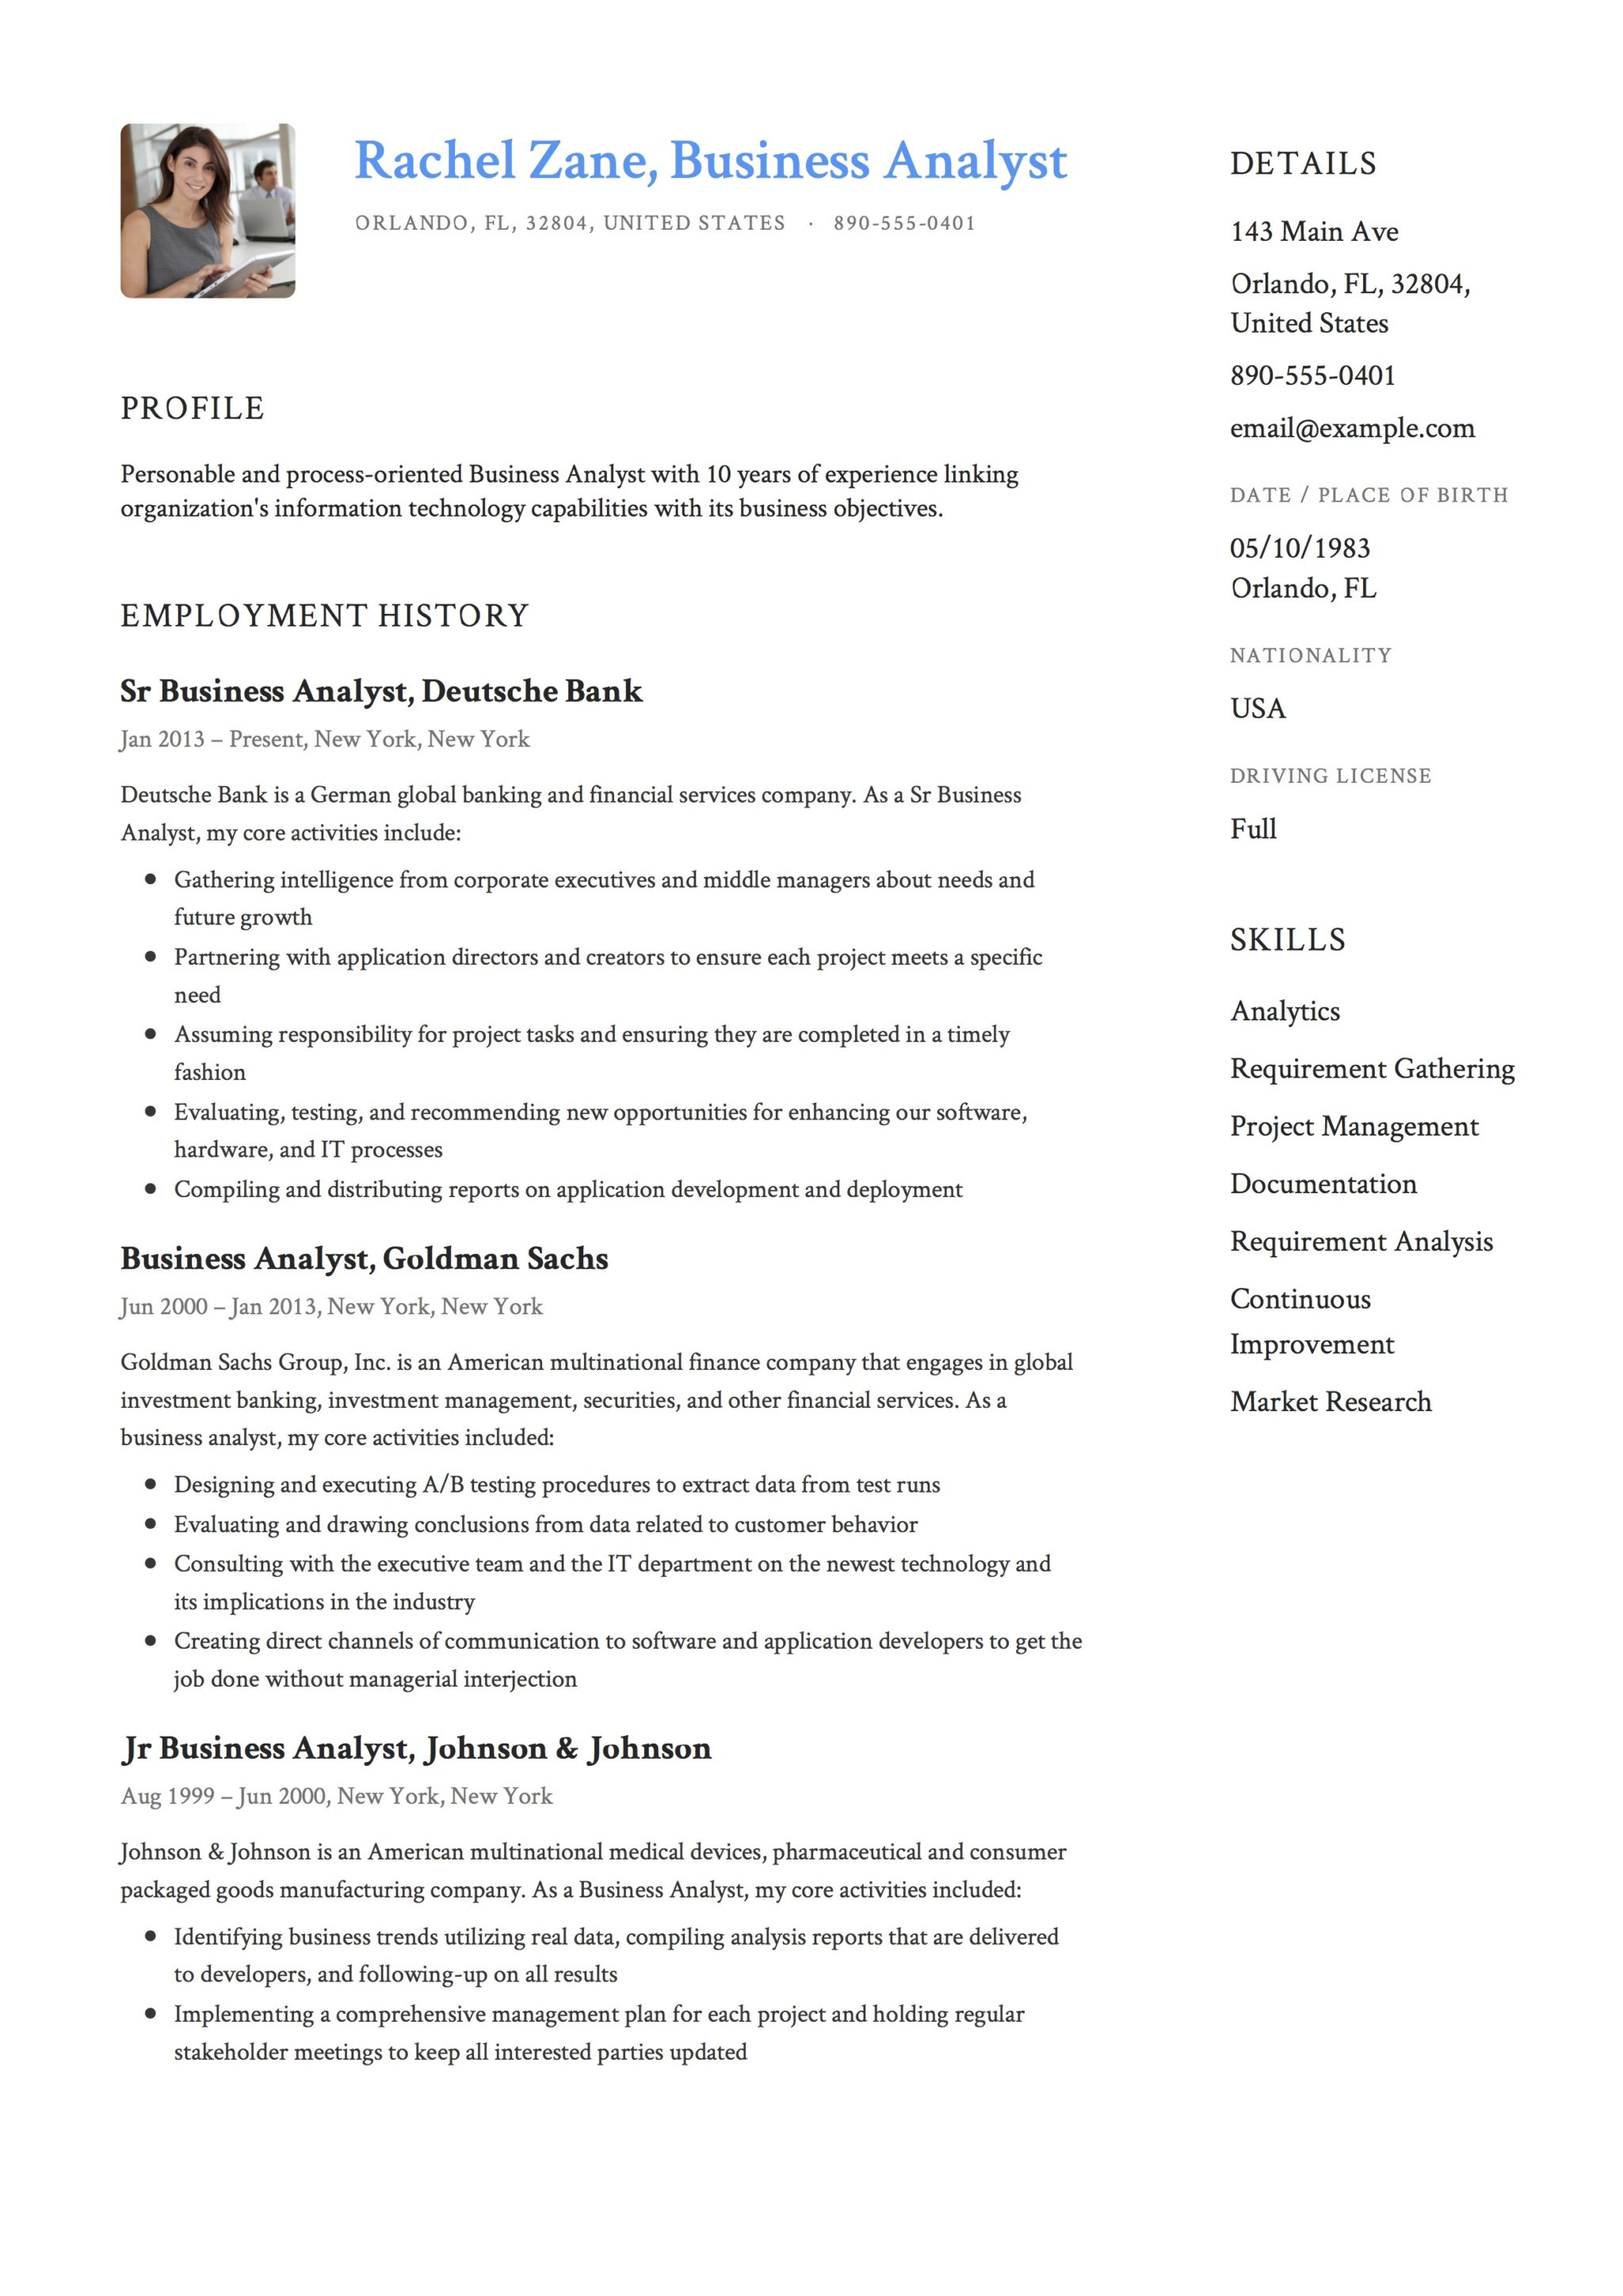 12 business analyst resume samples 2018 free downloads business analyst resume template flashek Choice Image